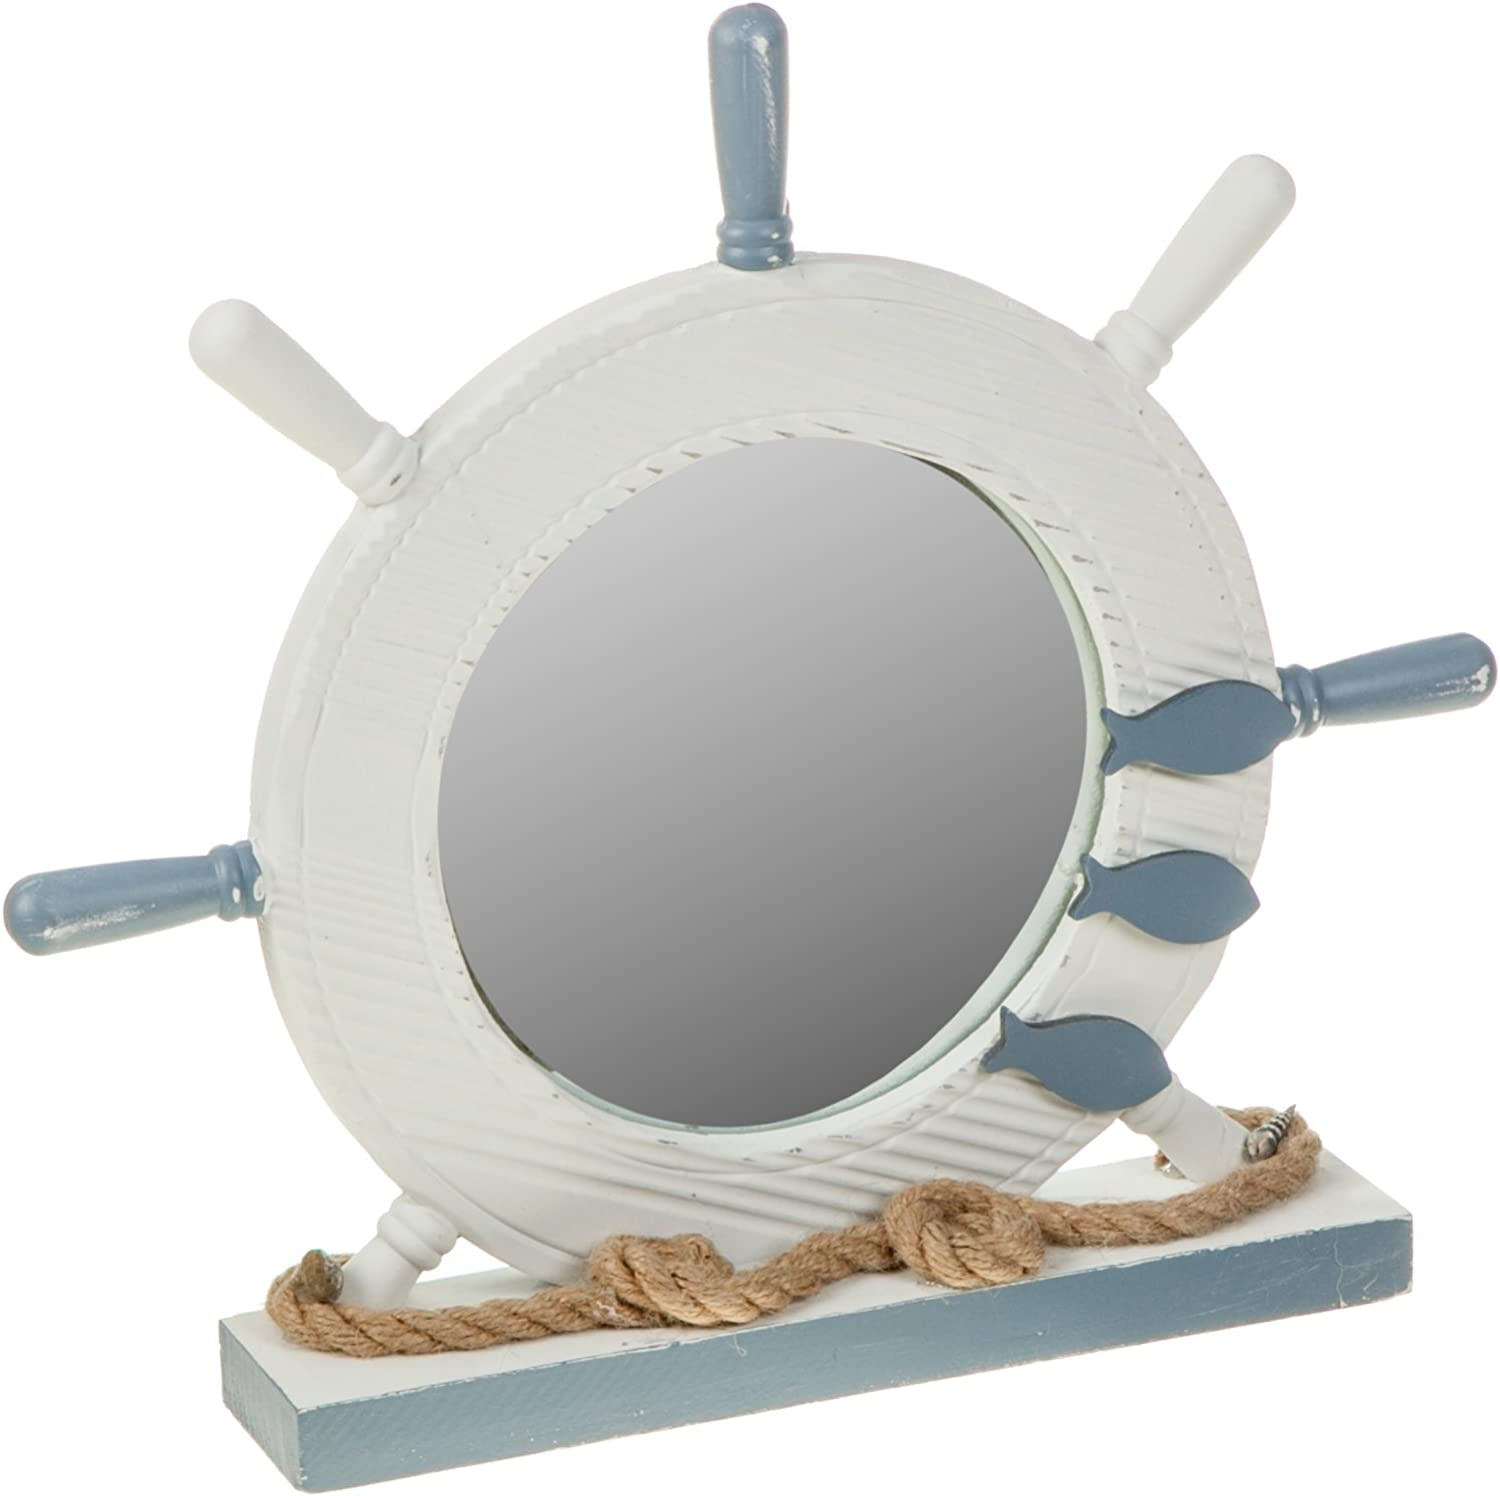 Ih casadecor Nauti Mirror, Multicolor